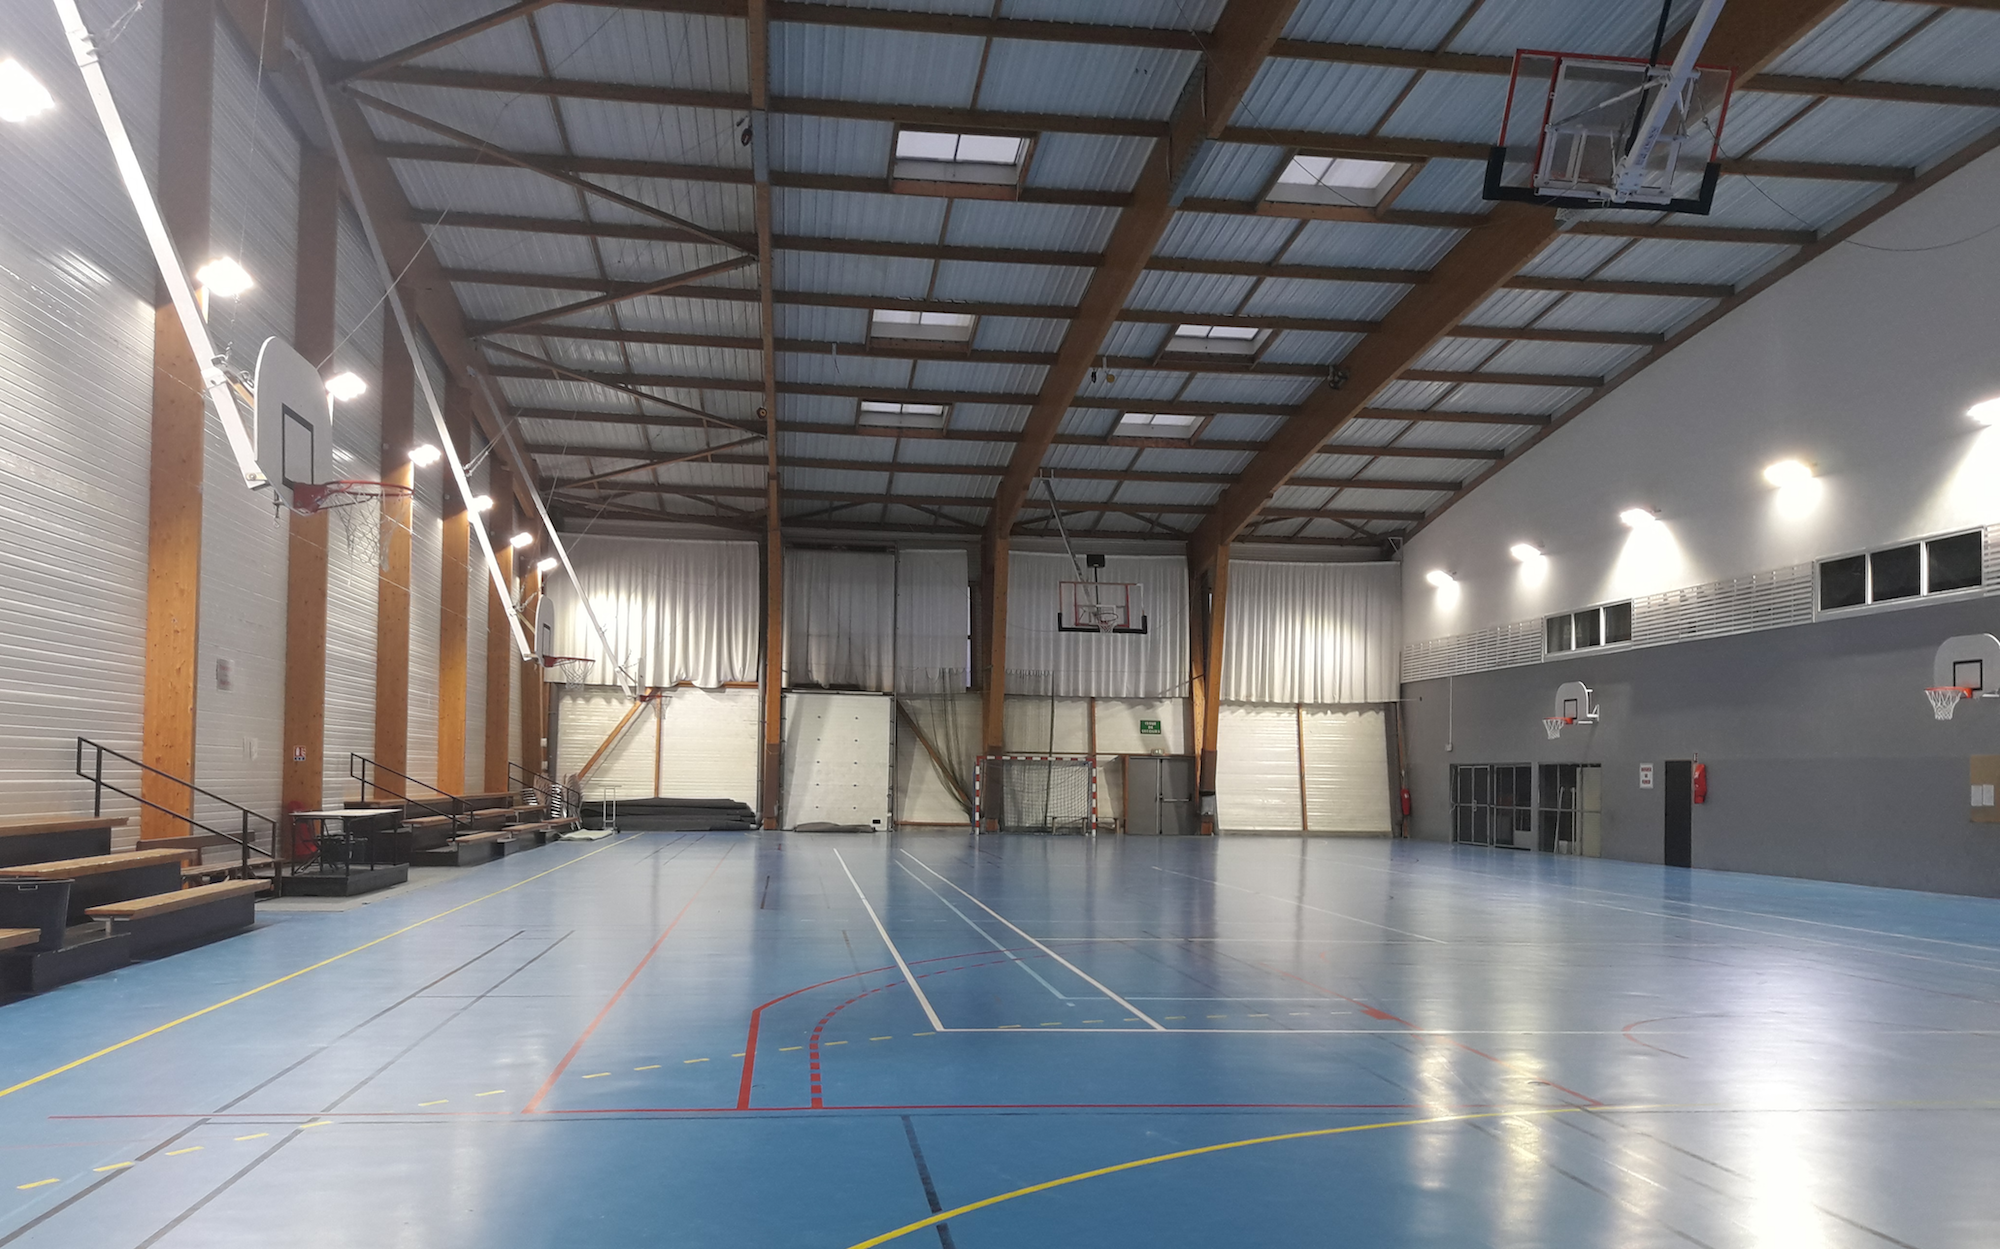 Maison des sports à Lannion (22)